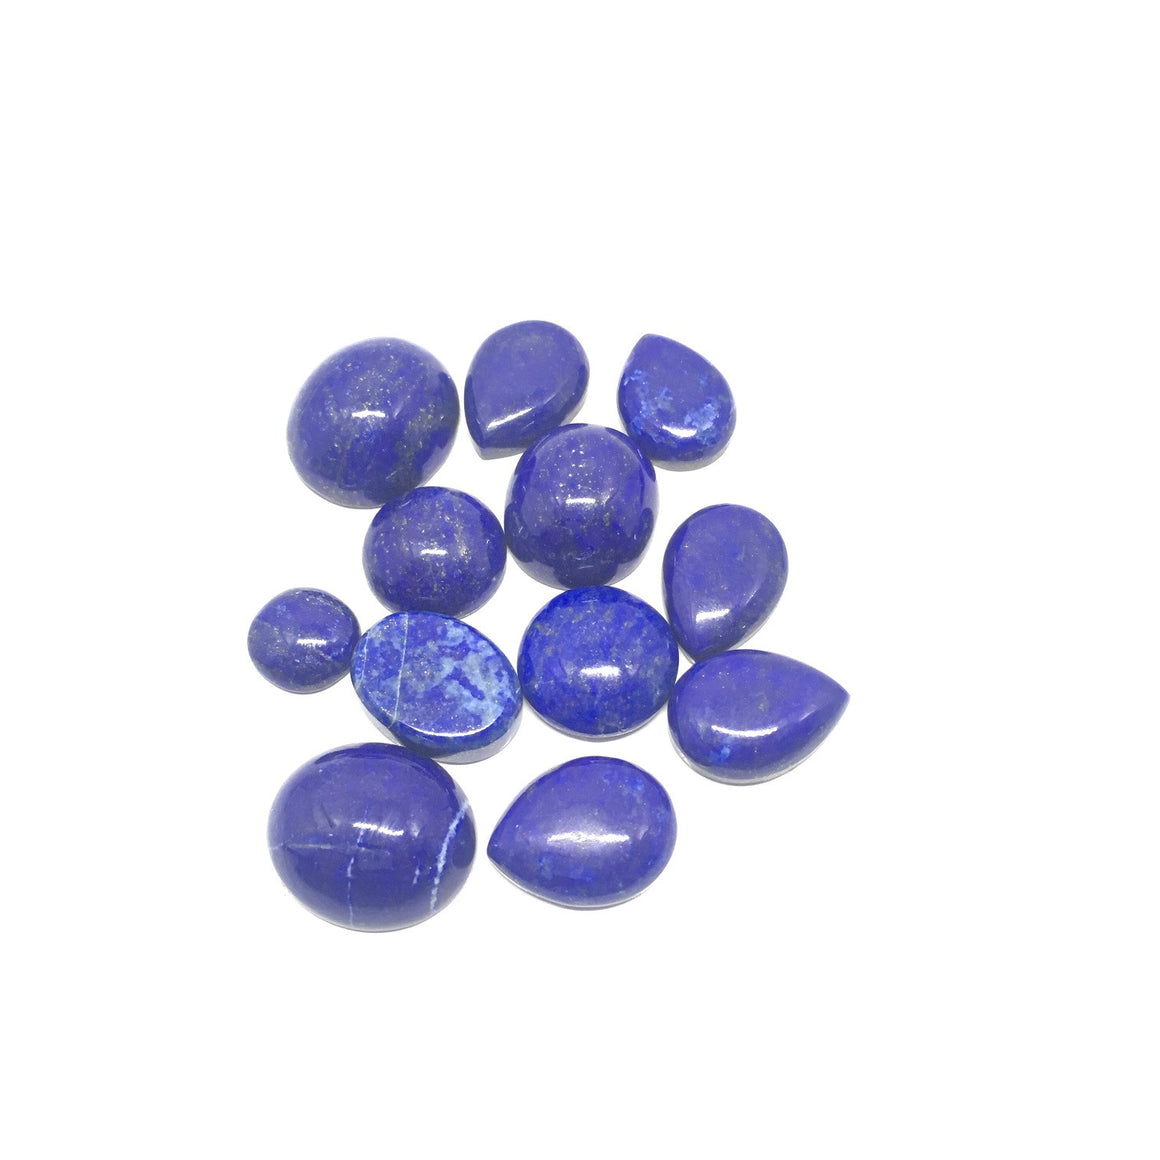 Lapis Lazuli Cabochon - Lapis Cabochon For Ring Multiple Cut - 182.75 ct